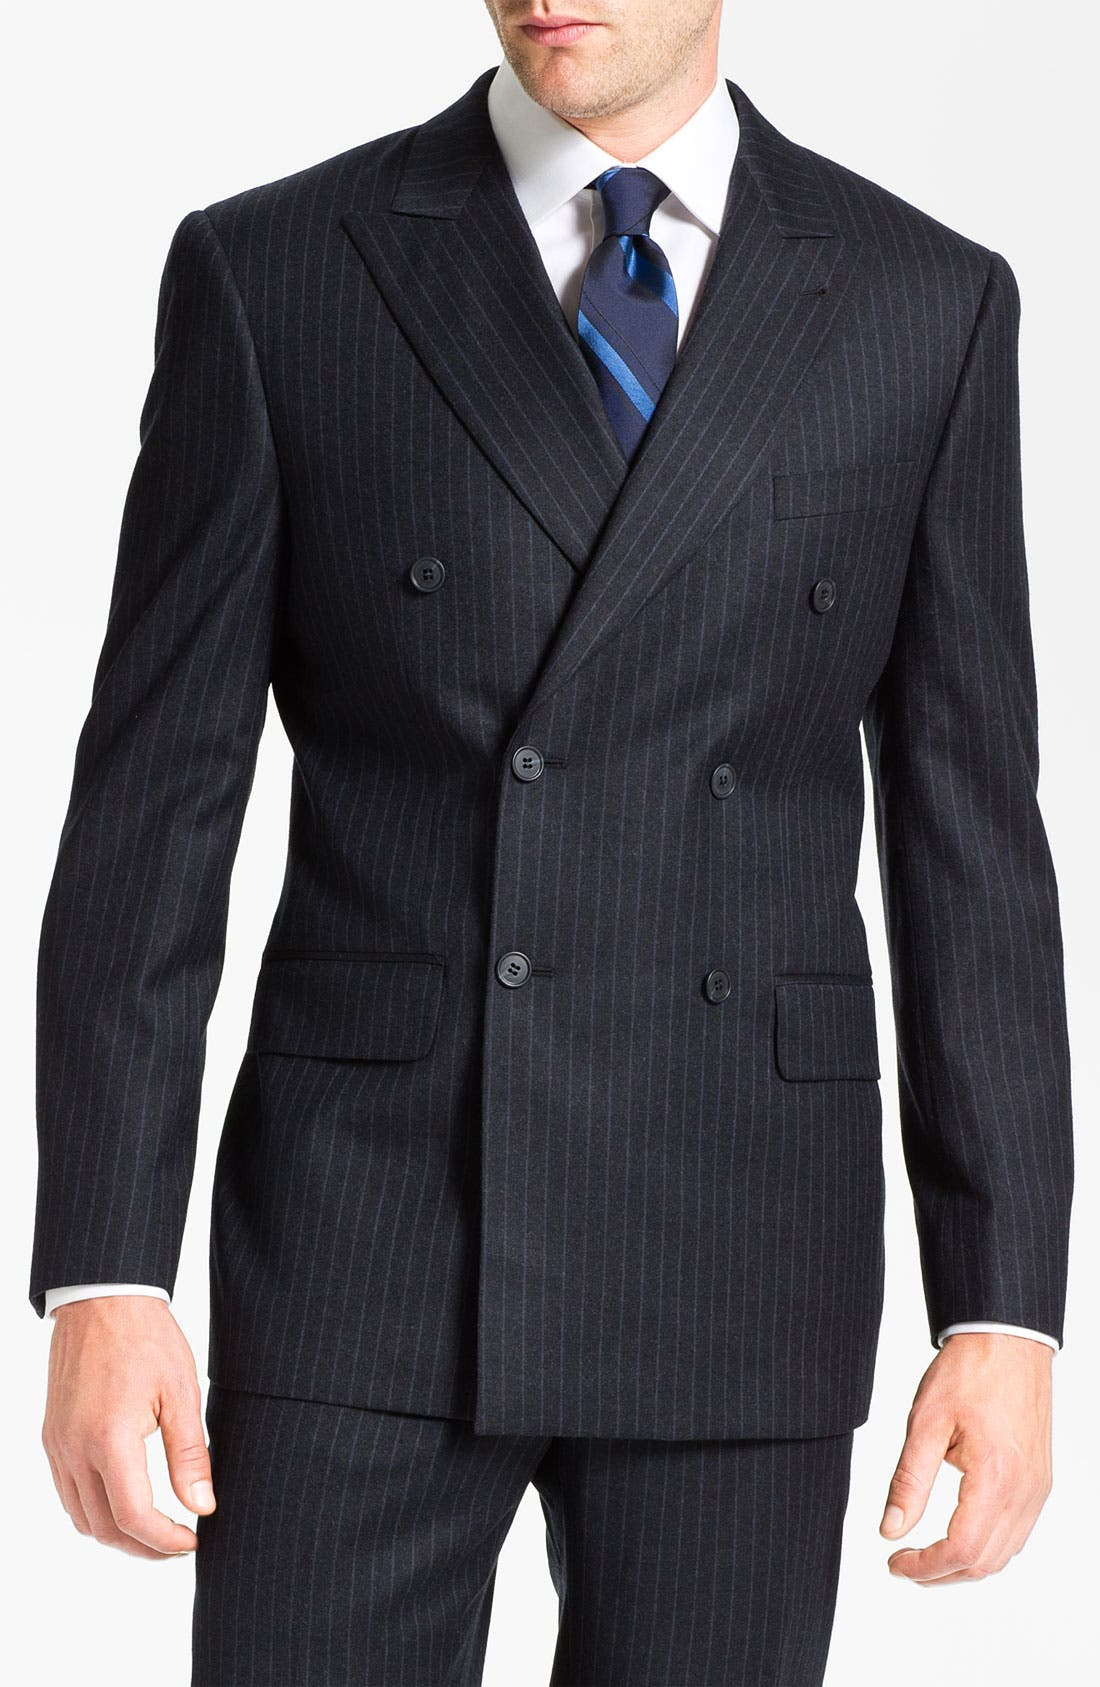 Alternate Image 1 Selected - Joseph Abboud Double Breasted Pinstripe Suit